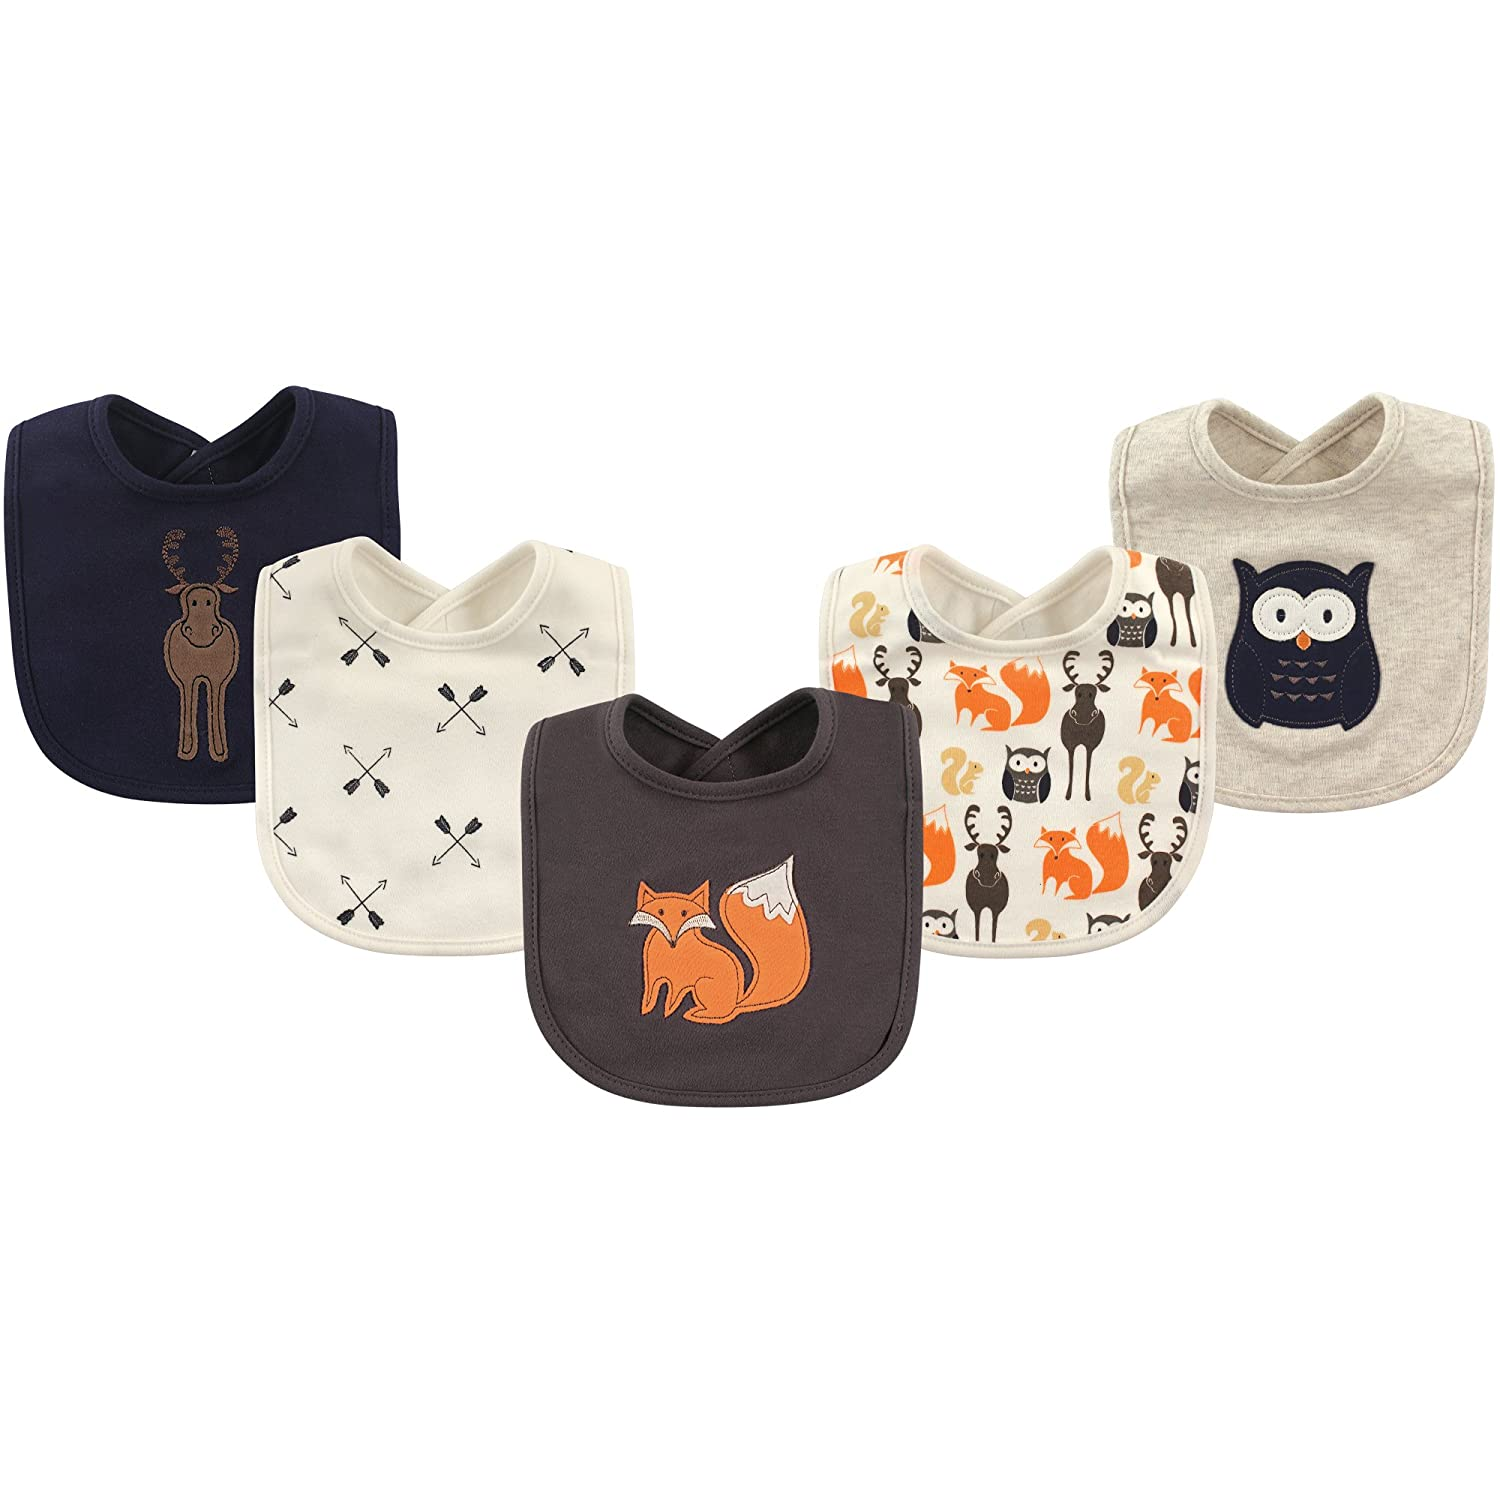 Hudson Baby Unisex Baby Cotton Bibs, Forest, One Size